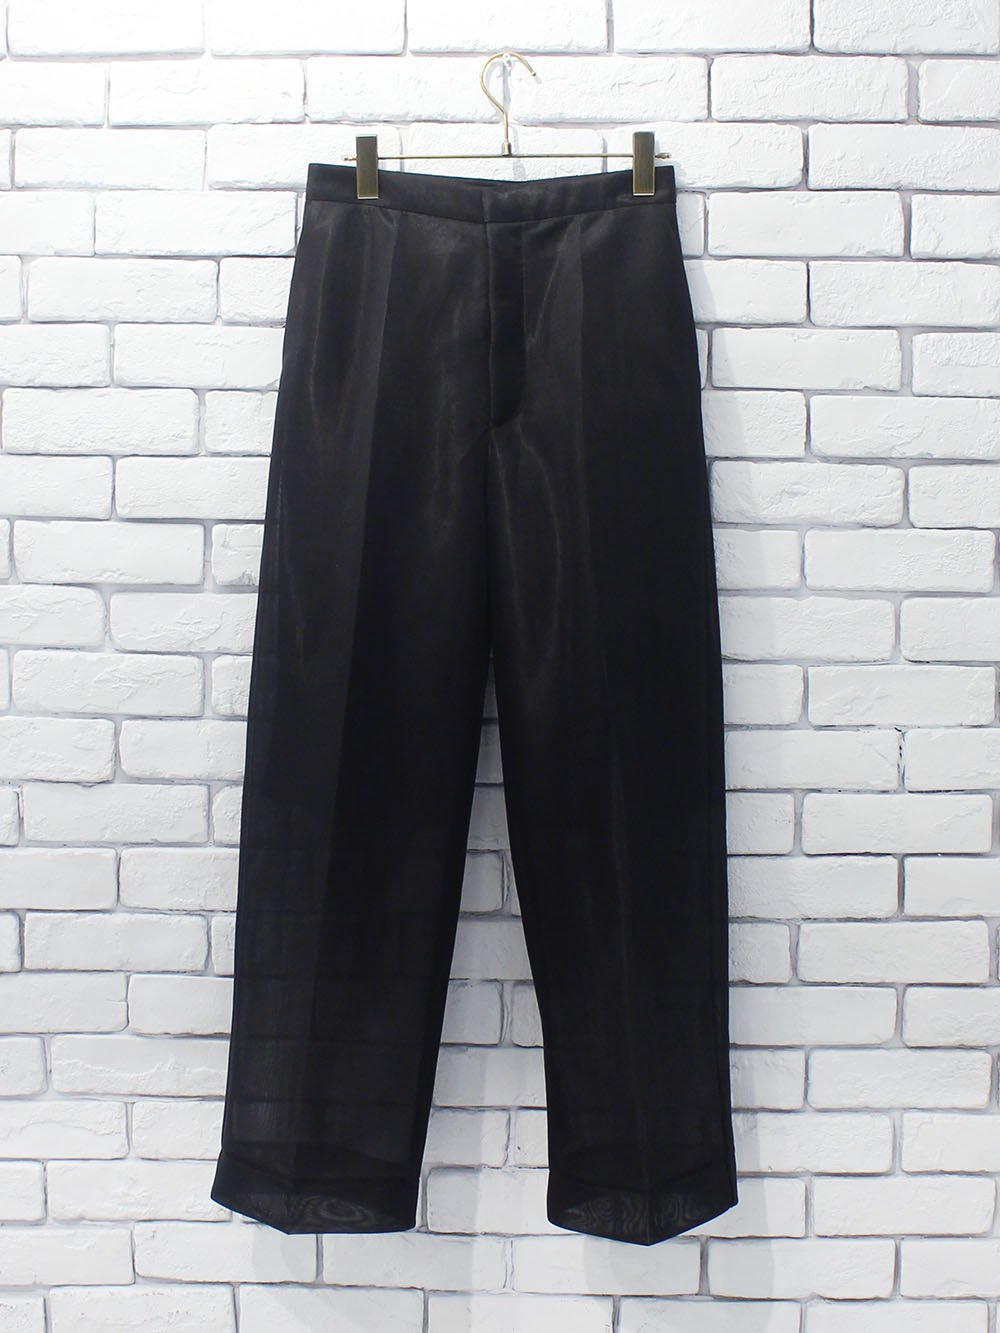 "<img class='new_mark_img1' src='https://img.shop-pro.jp/img/new/icons8.gif' style='border:none;display:inline;margin:0px;padding:0px;width:auto;' />PHEENY "" Seer double knit wide slacks (black) """